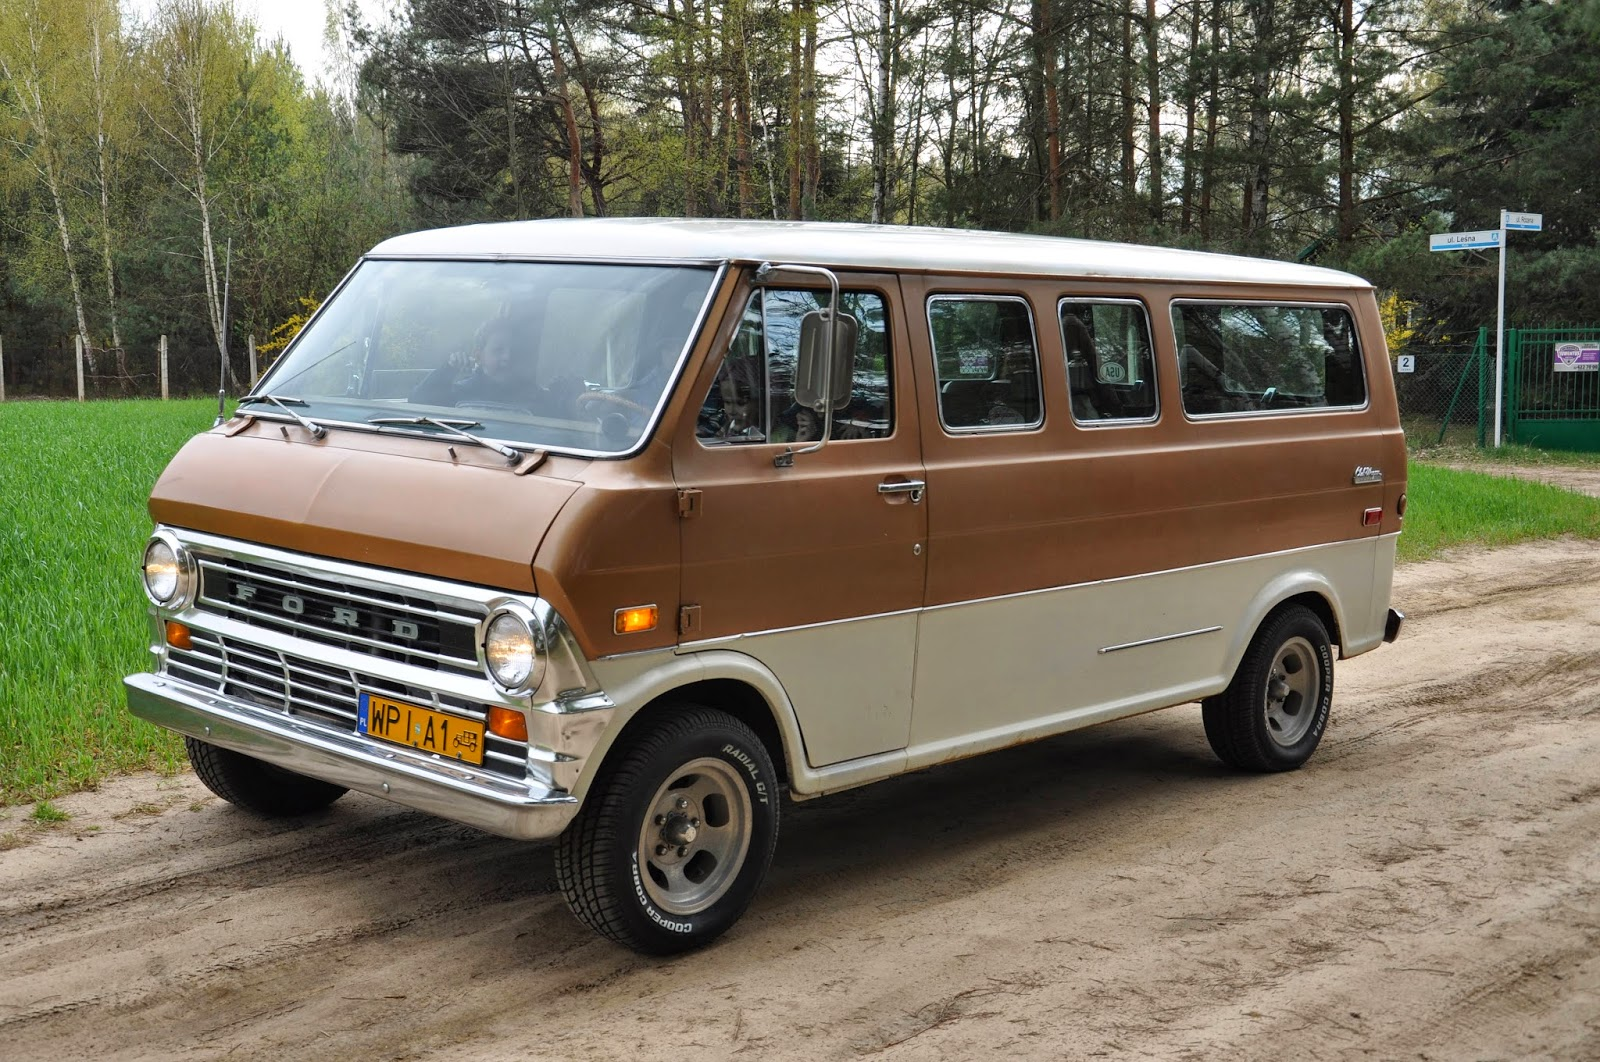 2017 Ford Econoline Van >> Rebel Rides Behind the Iron Curtain: 1972 Ford E200 Chateau Club Wagon walk-around video